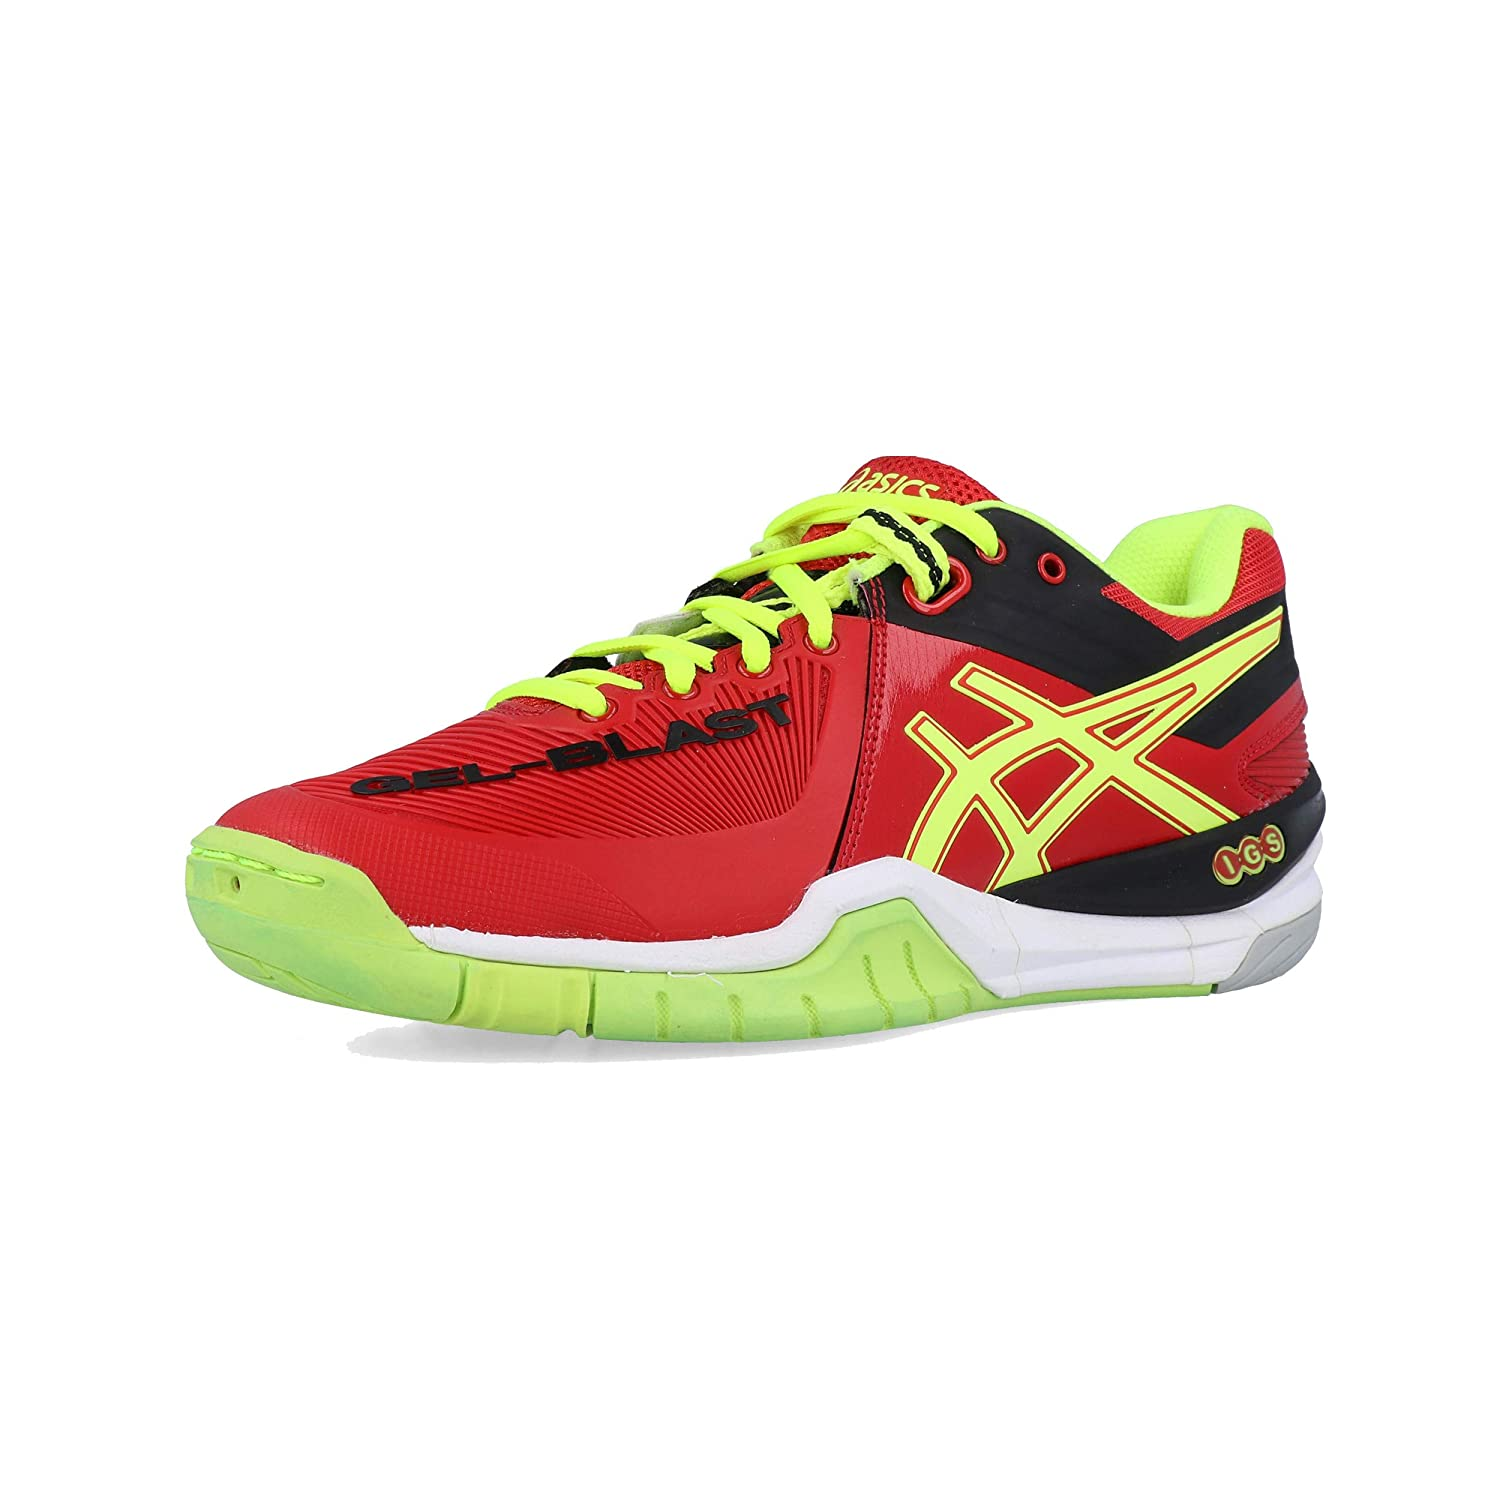 ASICS Gel Blast 6, Men's Indoor Court Shoes